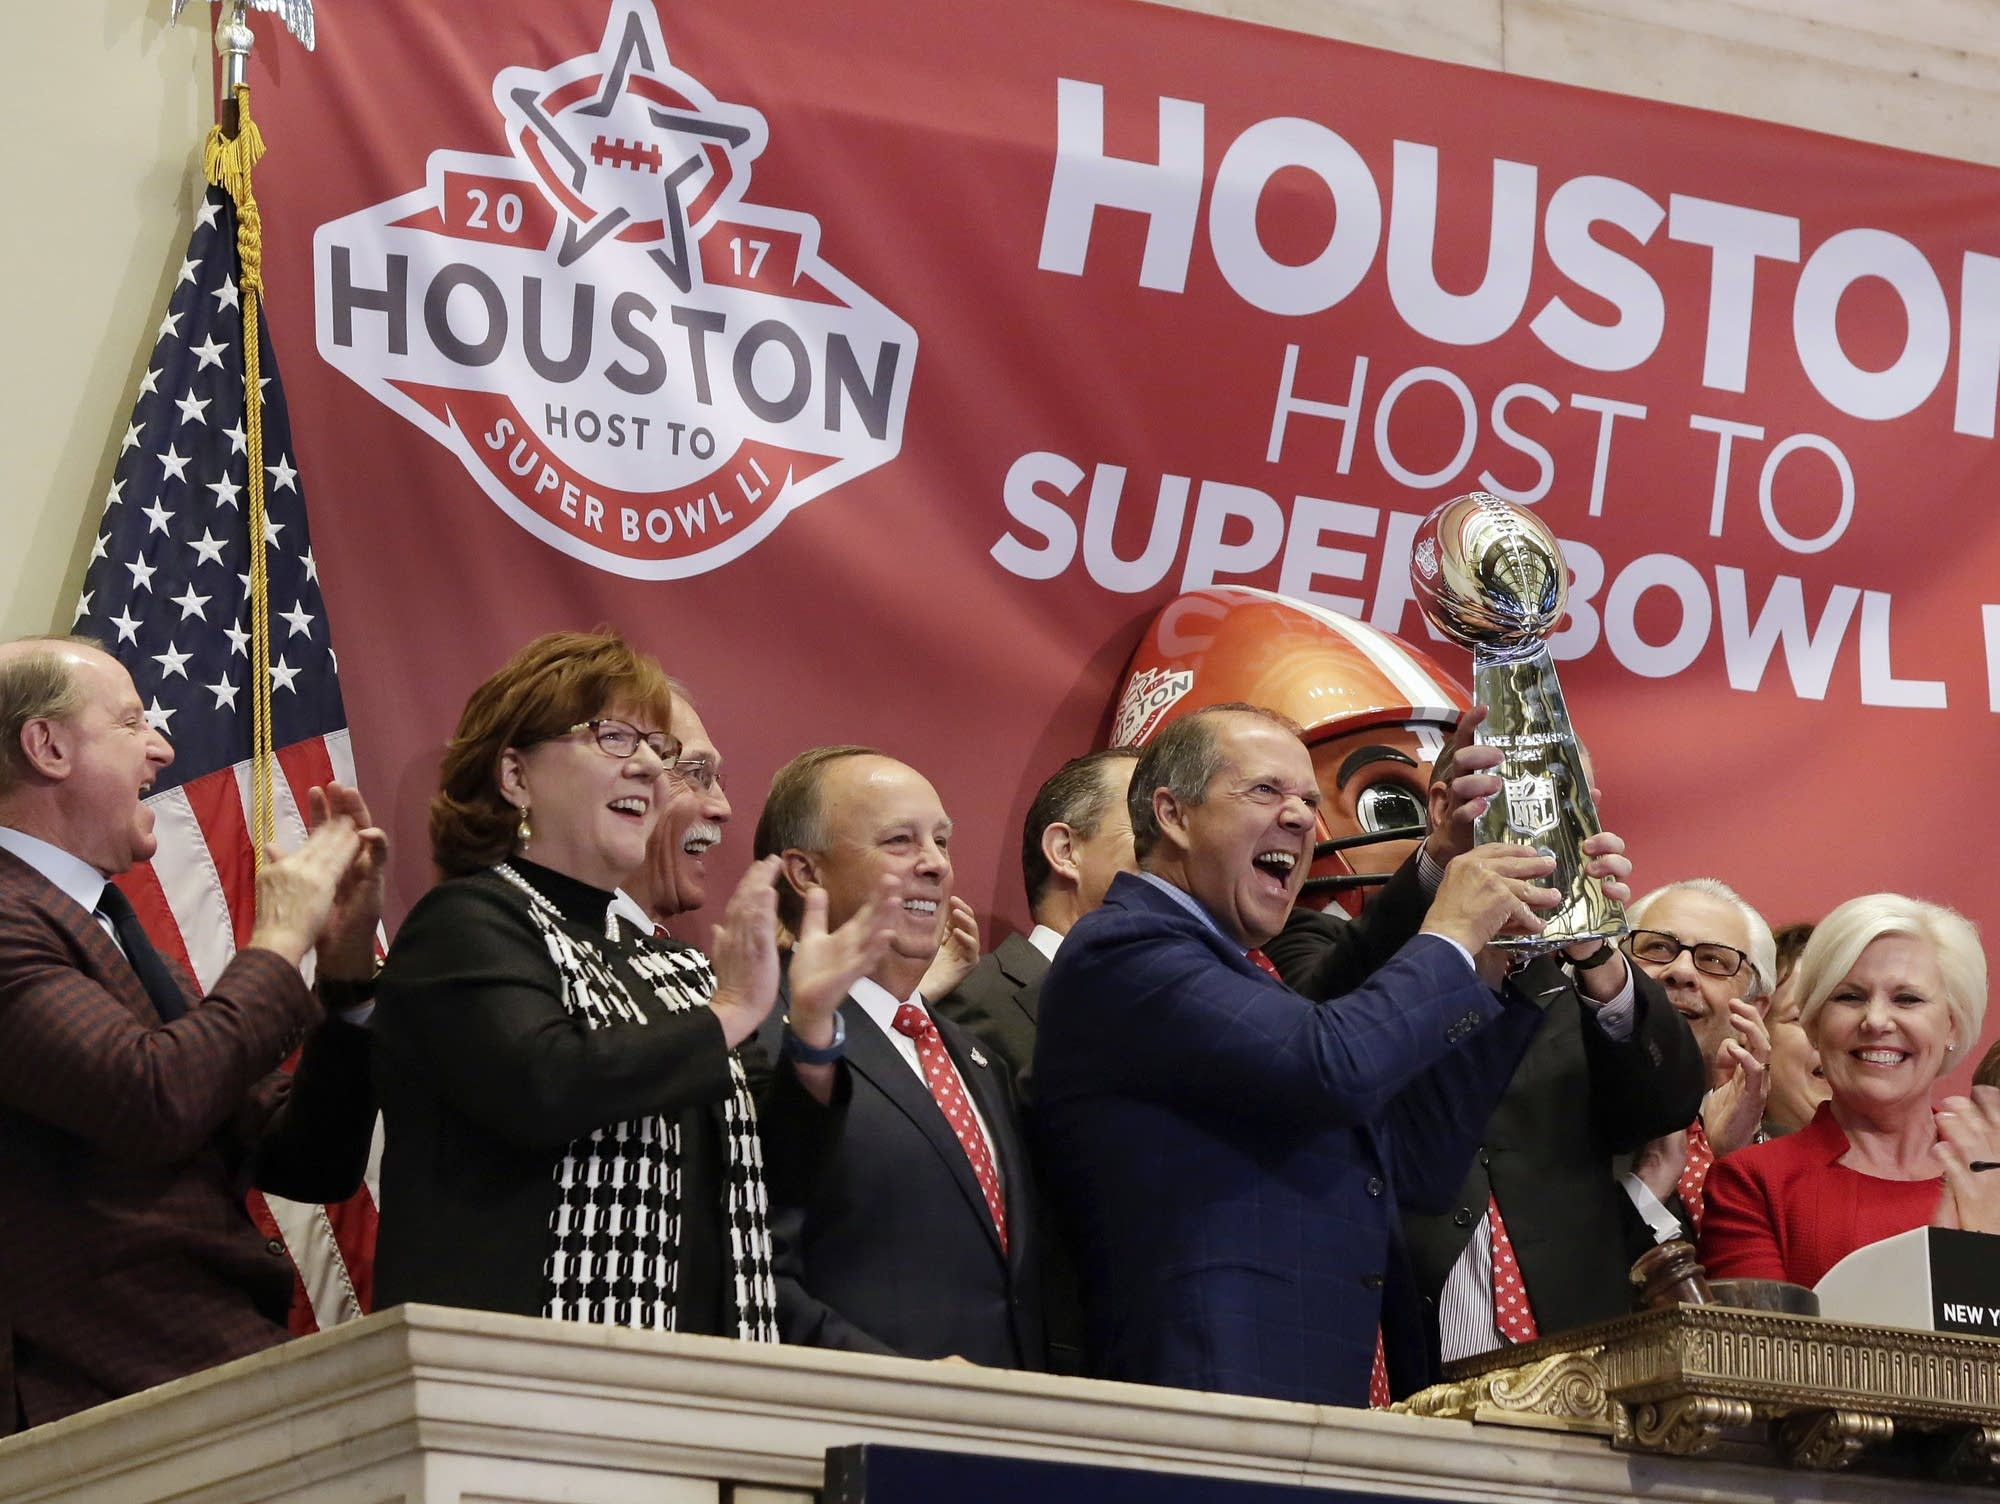 Celebrating Houston hosting the Super Bowl